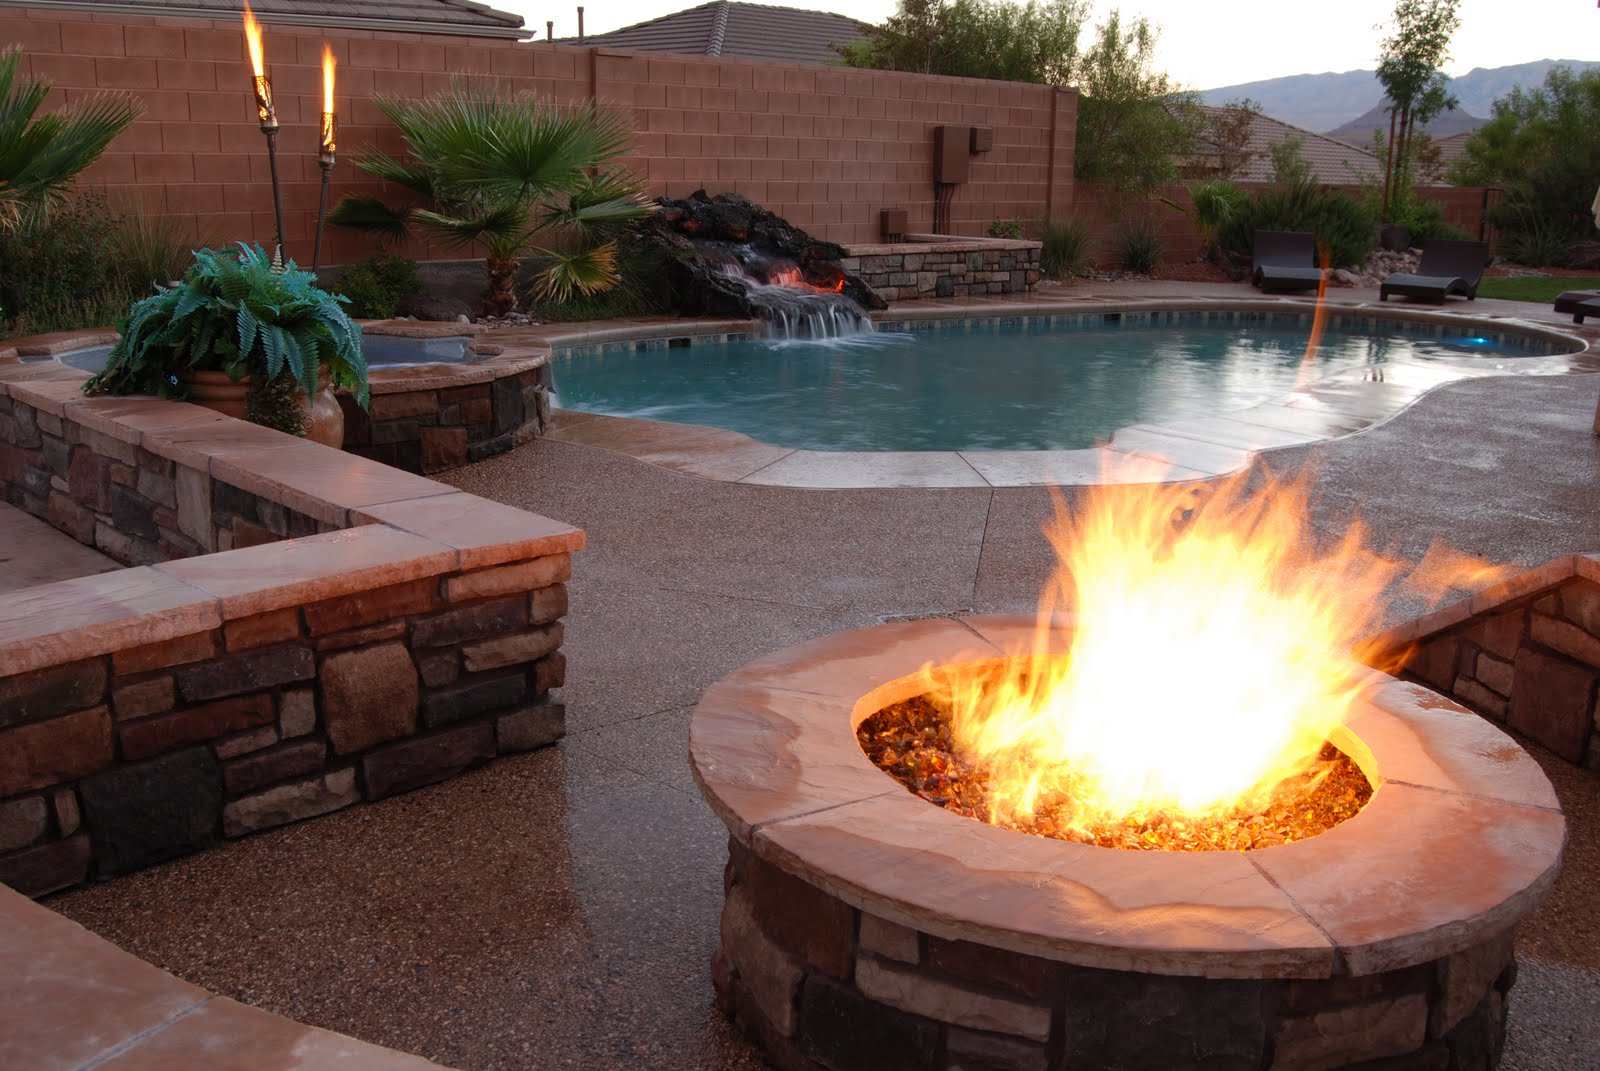 Fire Pits And Tiki Torches Are Popping Up Everywhere Very To Operate If You Installing A Gas Line For Pool Heater Bbq Or Any Other